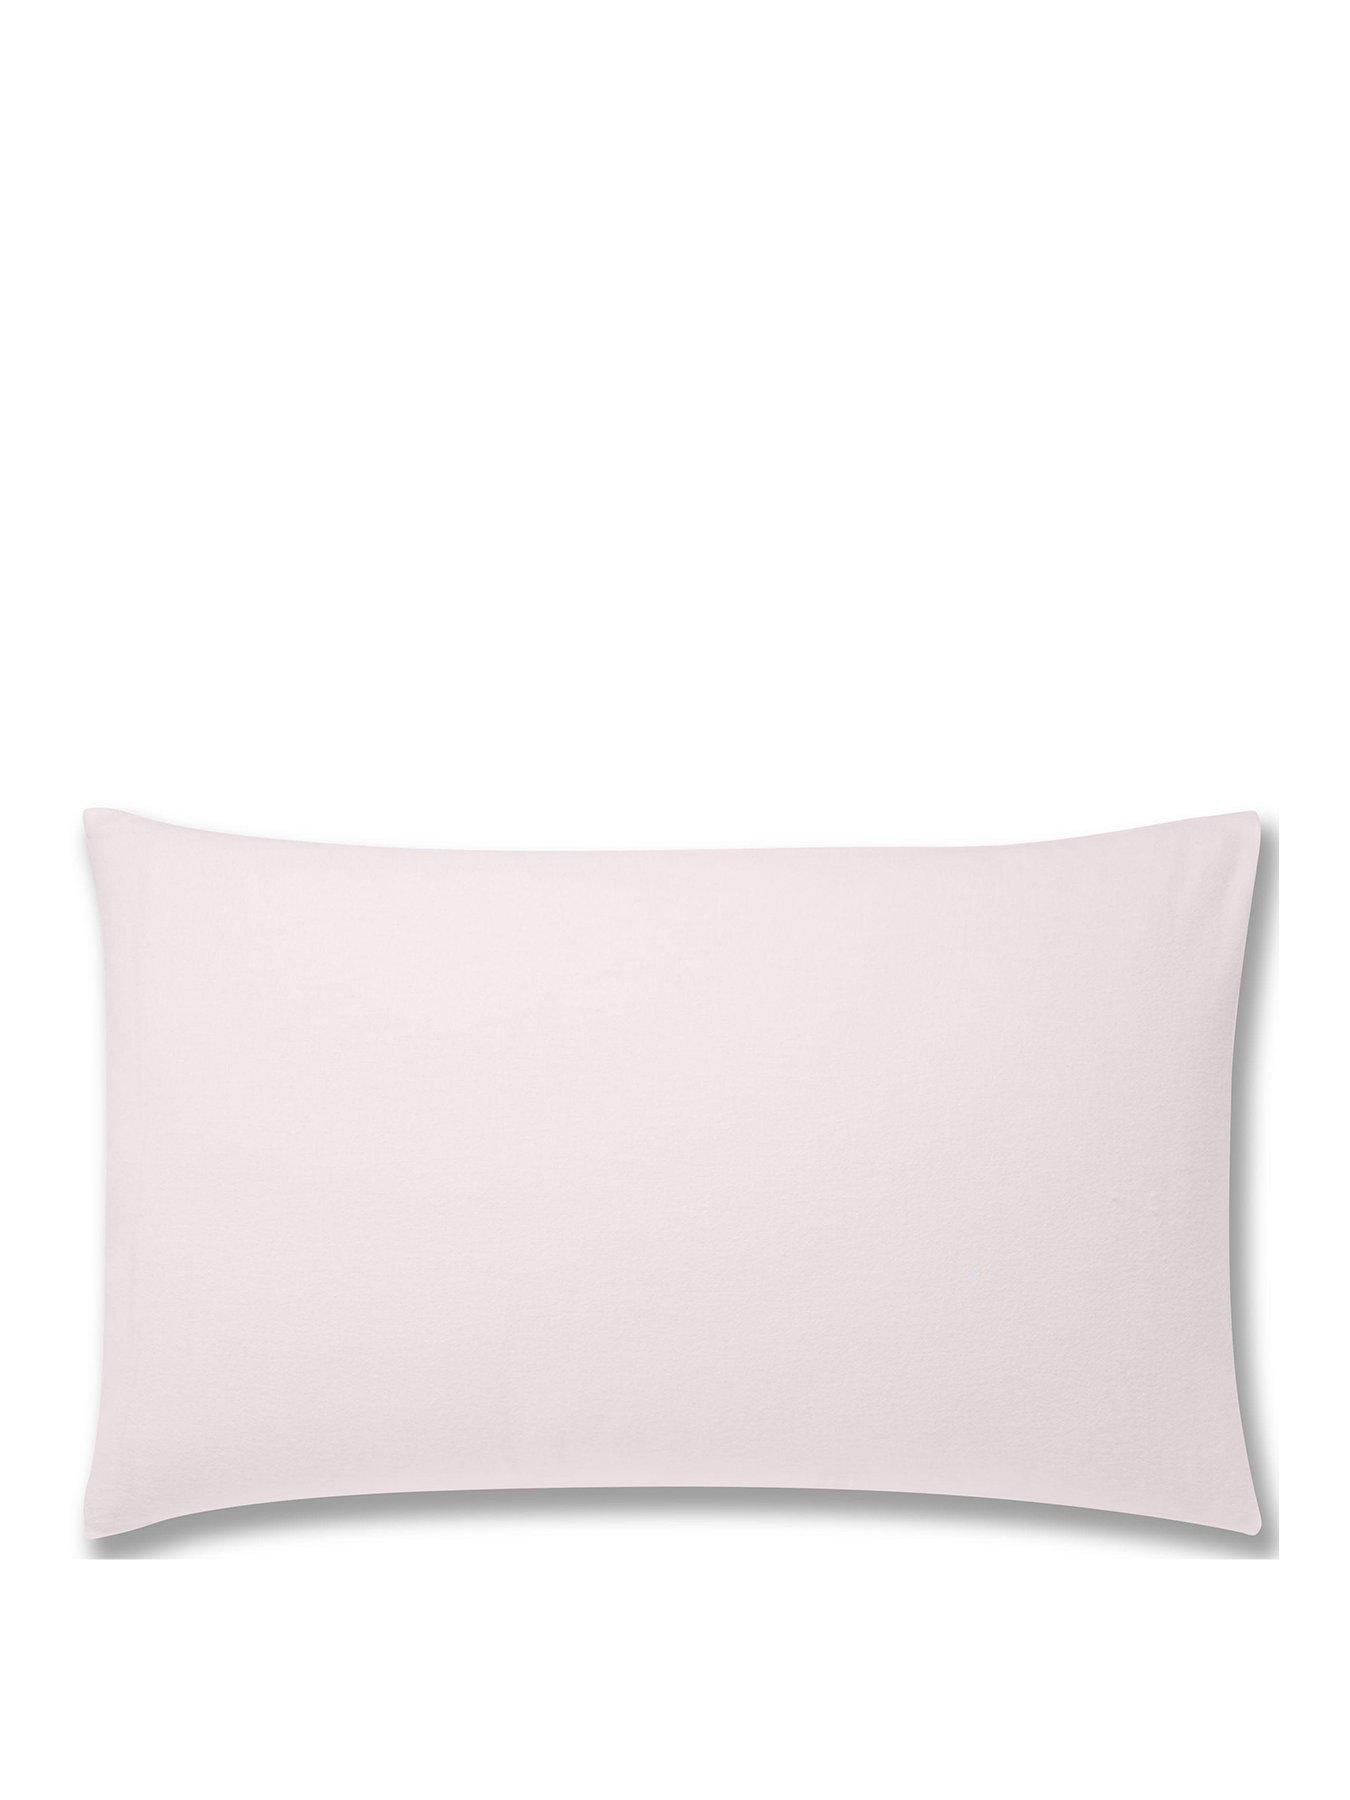 Catherine lansfield   Pillow cases